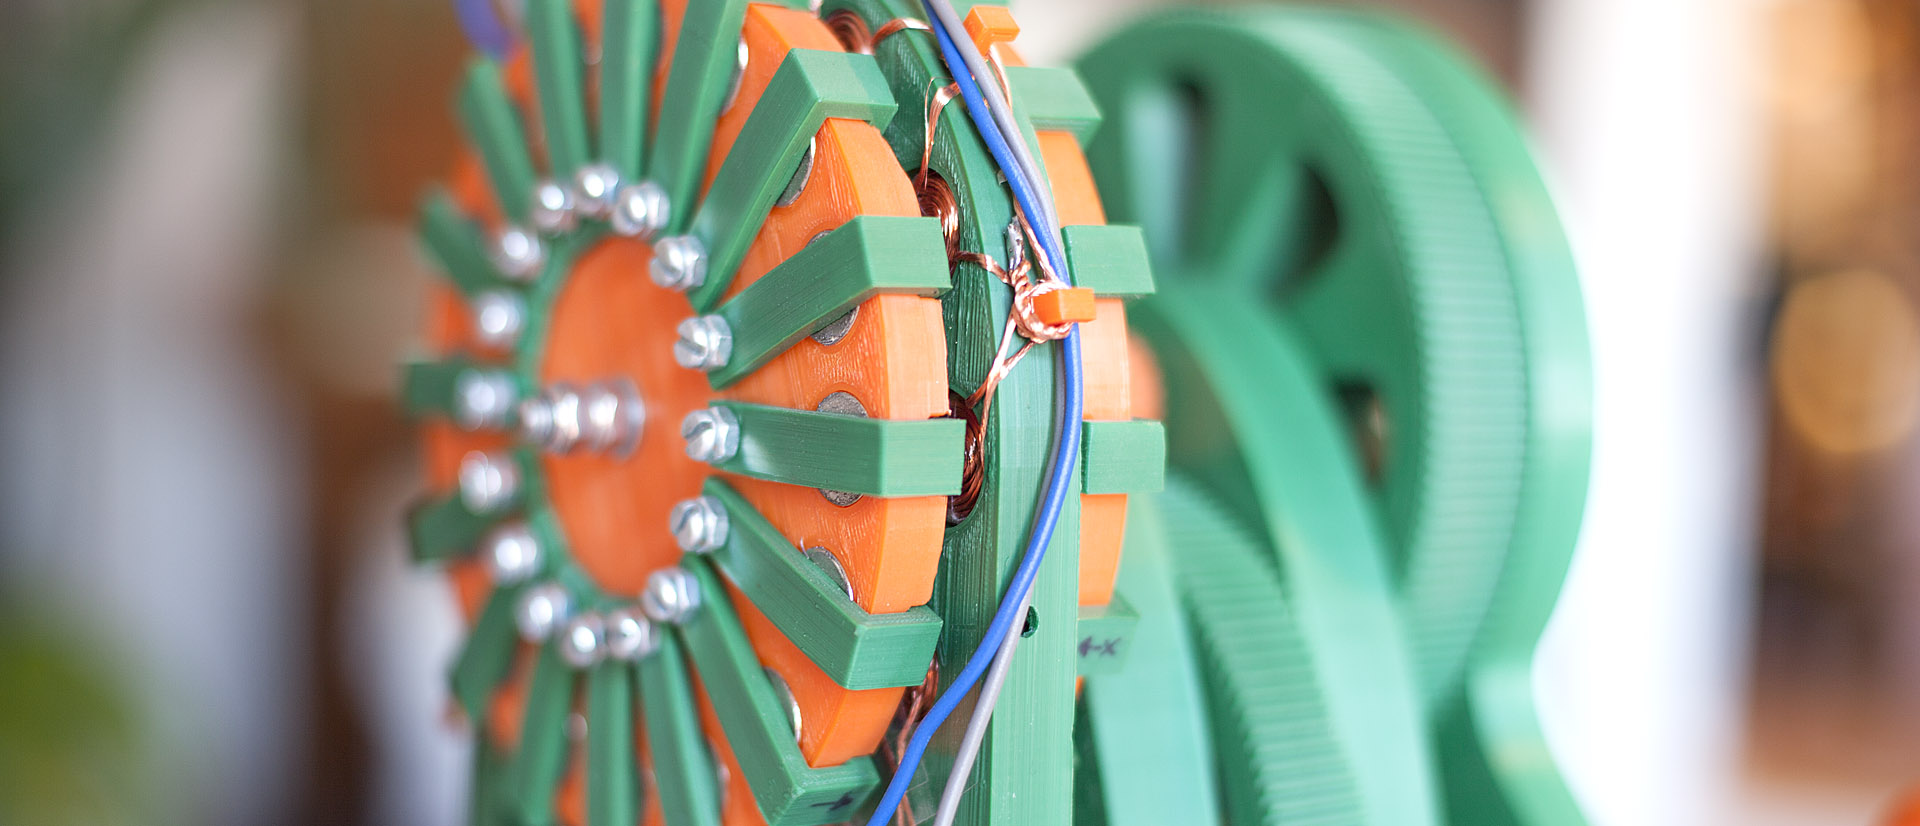 Justpressprint 3d printed Power Generator v1 closeup